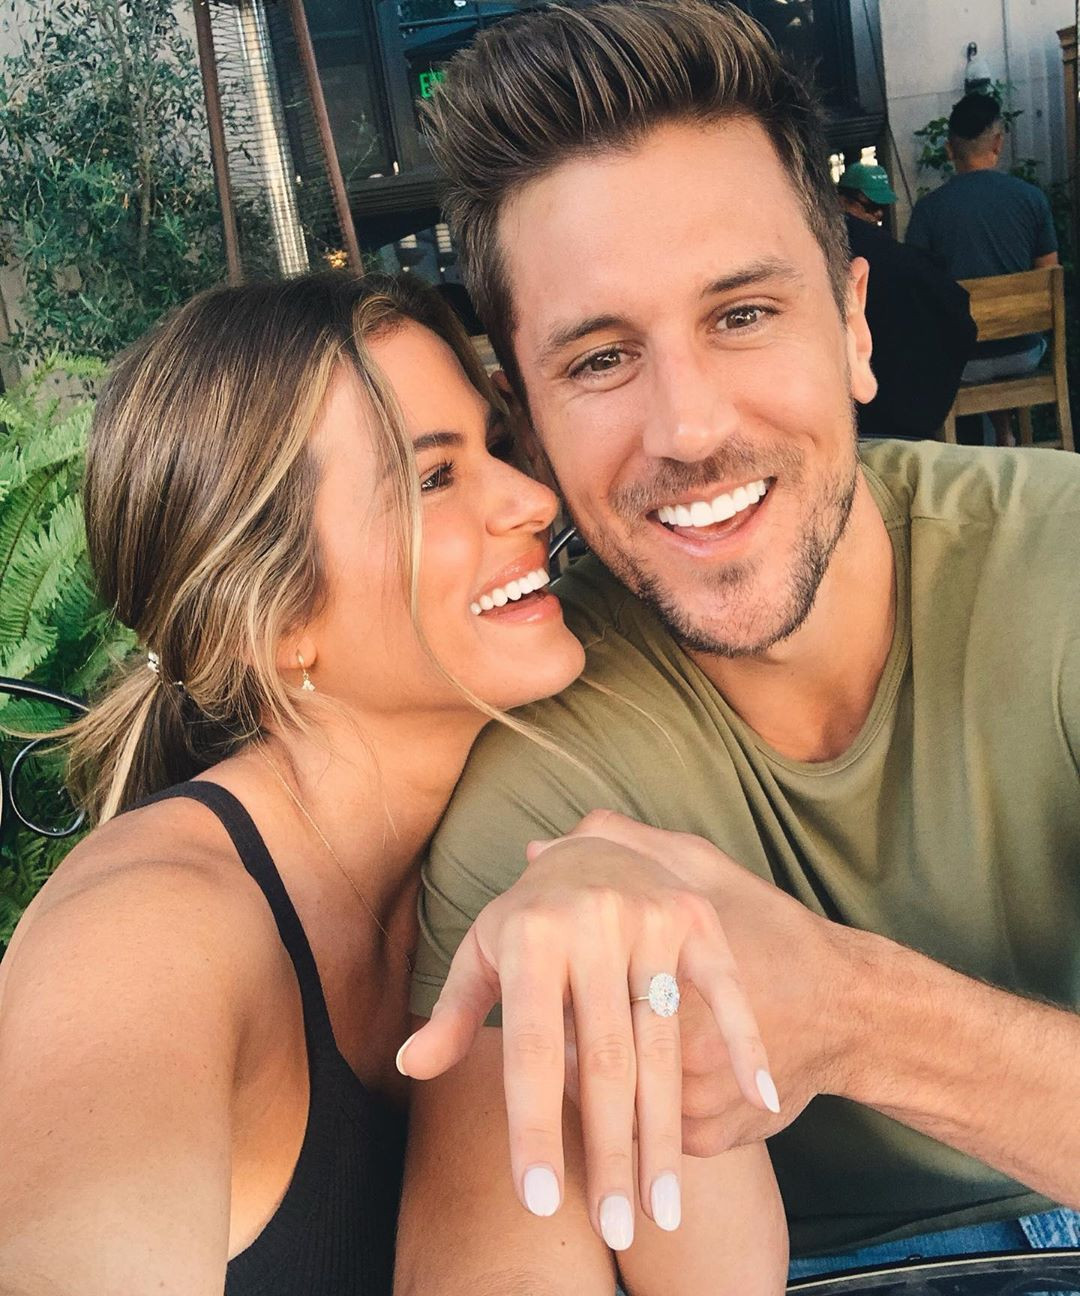 JoJo Fletcher, Jordan Rodgers, Engagement Instagram